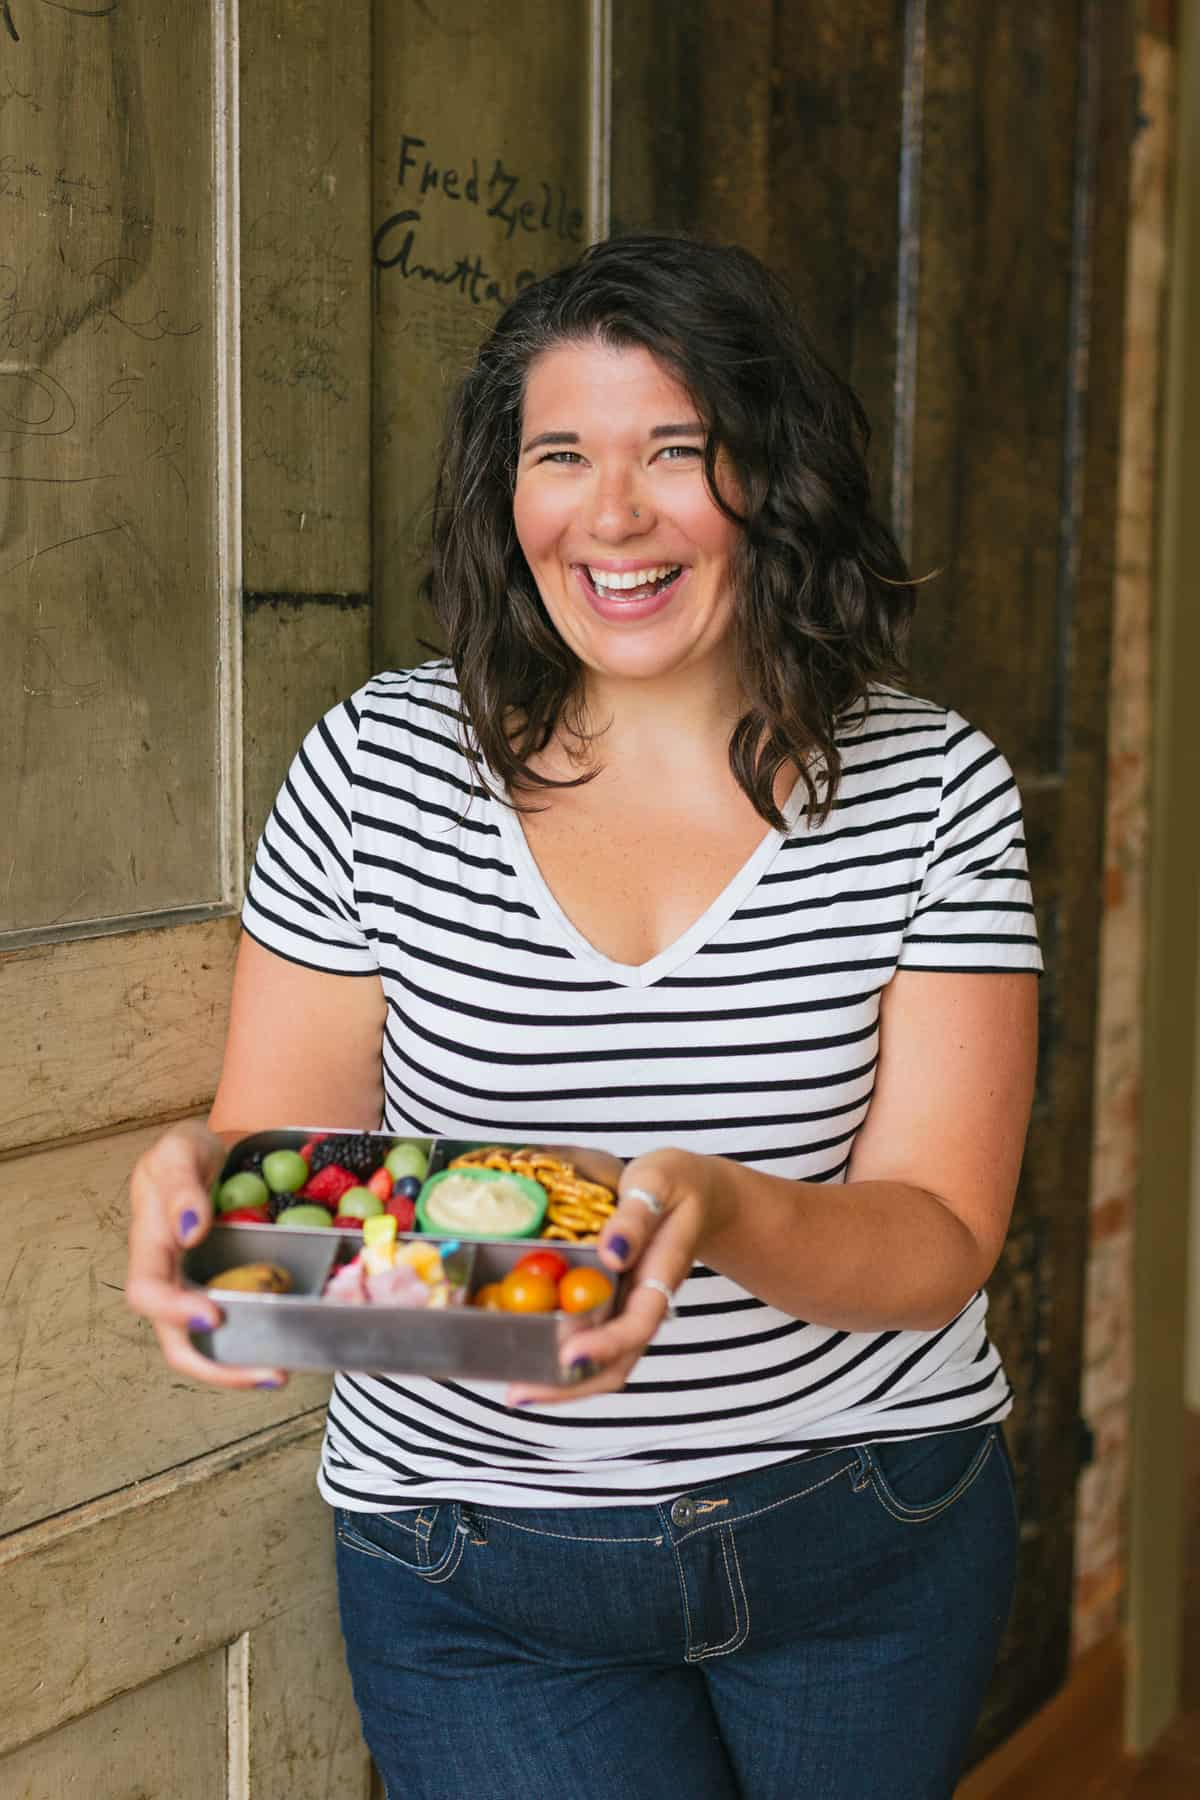 Brunette woman in a striped shirt holding a bento-style lunch box and smiling.